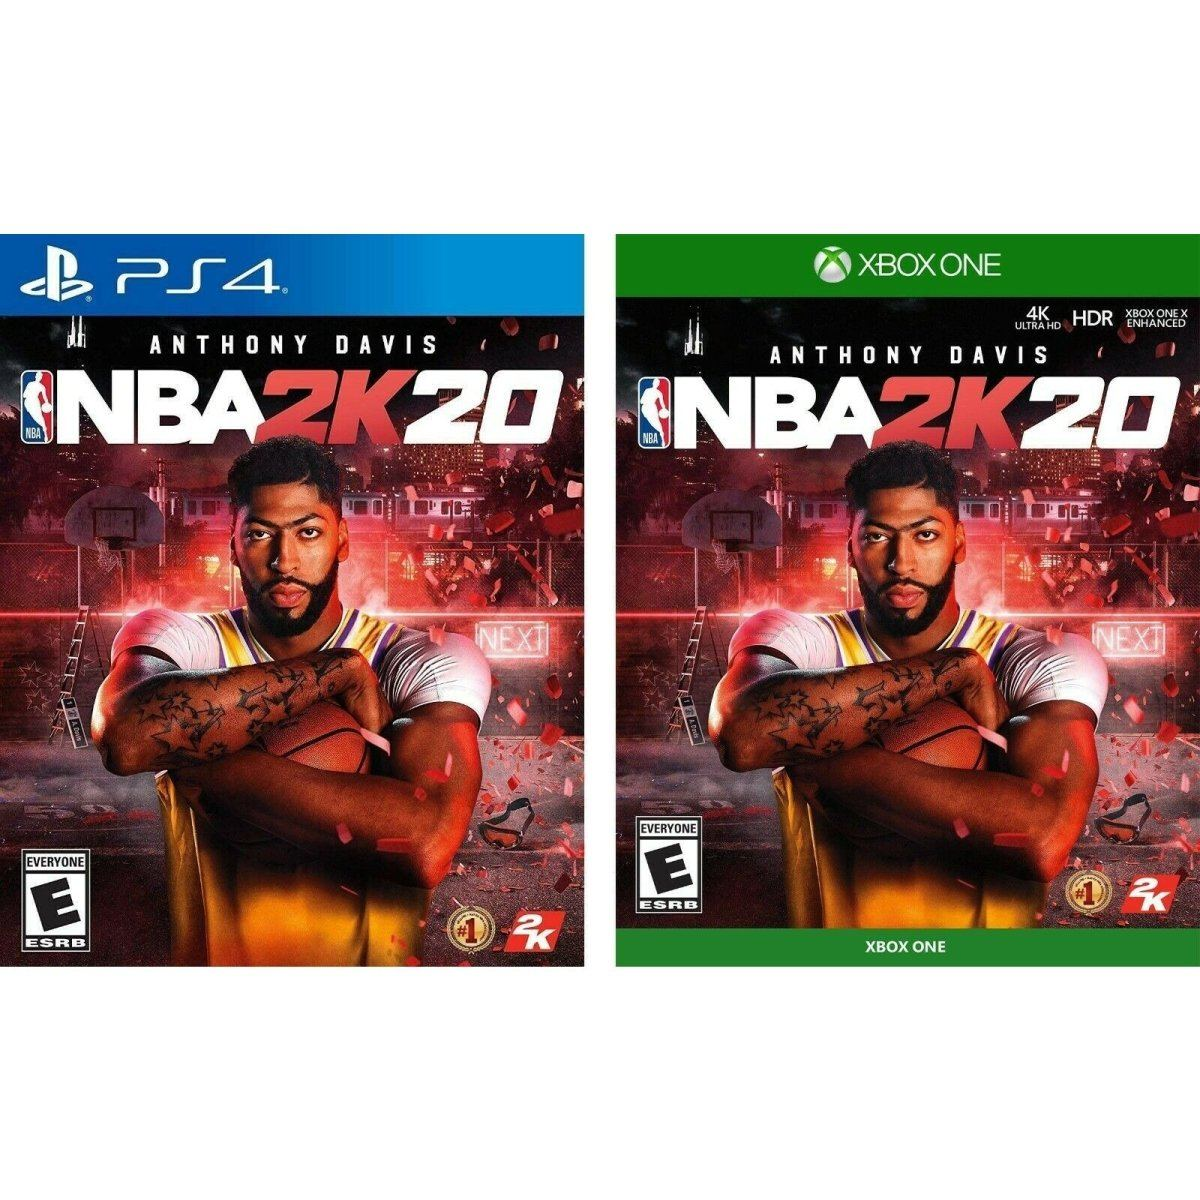 NBA 2K20 - PlayStation 4 or Xbox One - Fix Or Cell Now Device Shop